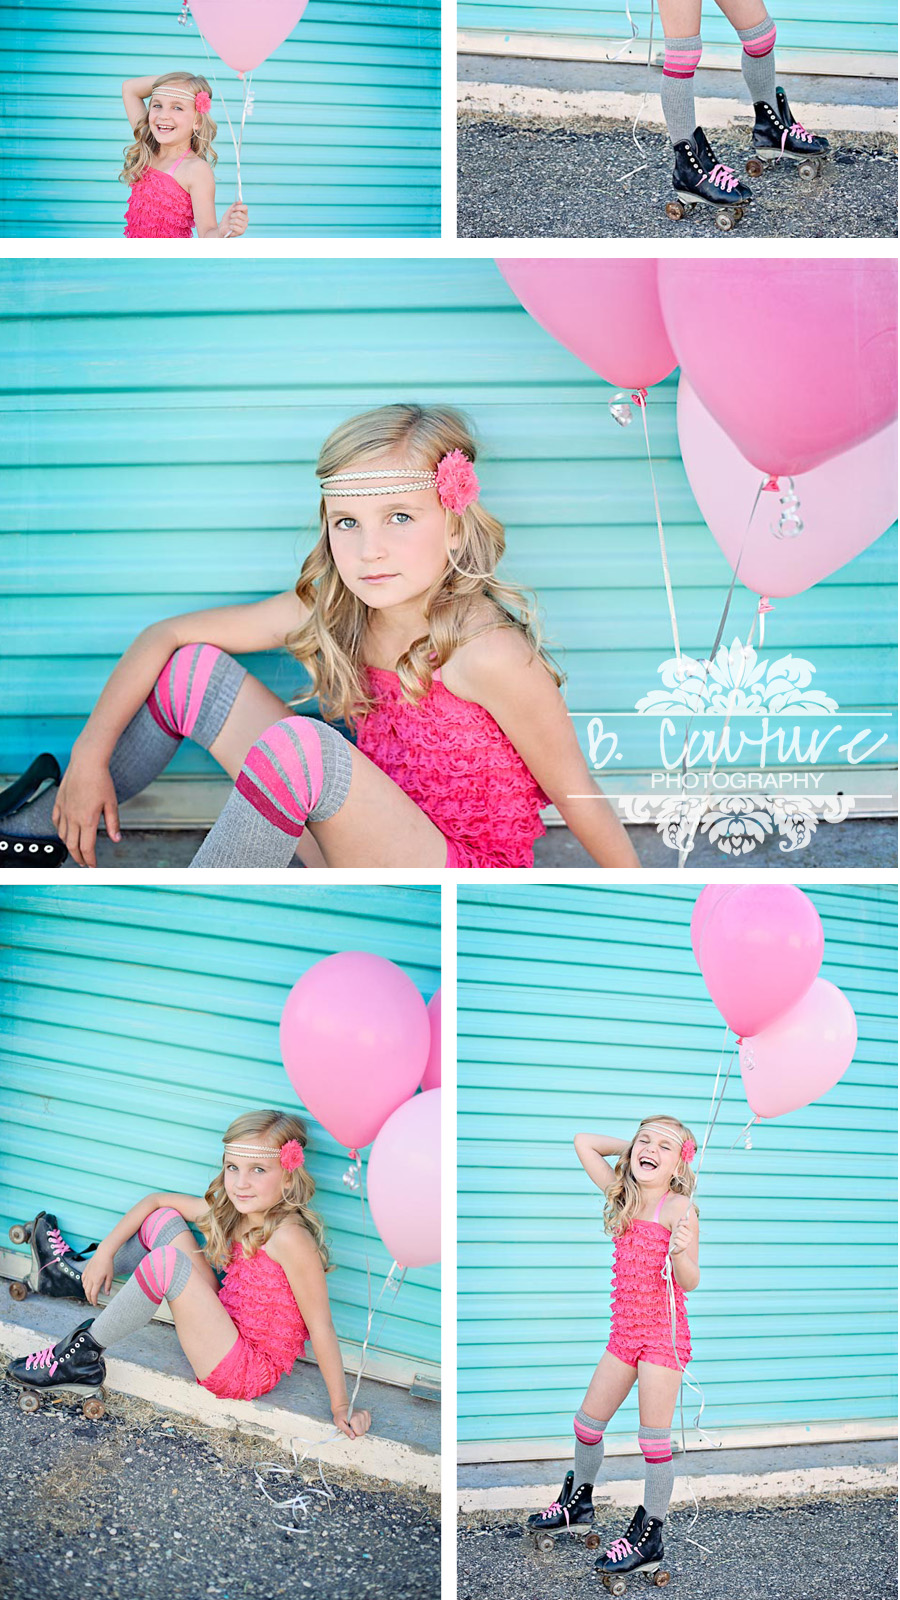 BRYNLEE BALOON RETRO ROLLER BEAUTY! {UTAH CHILD PHOTOGRAPHER}